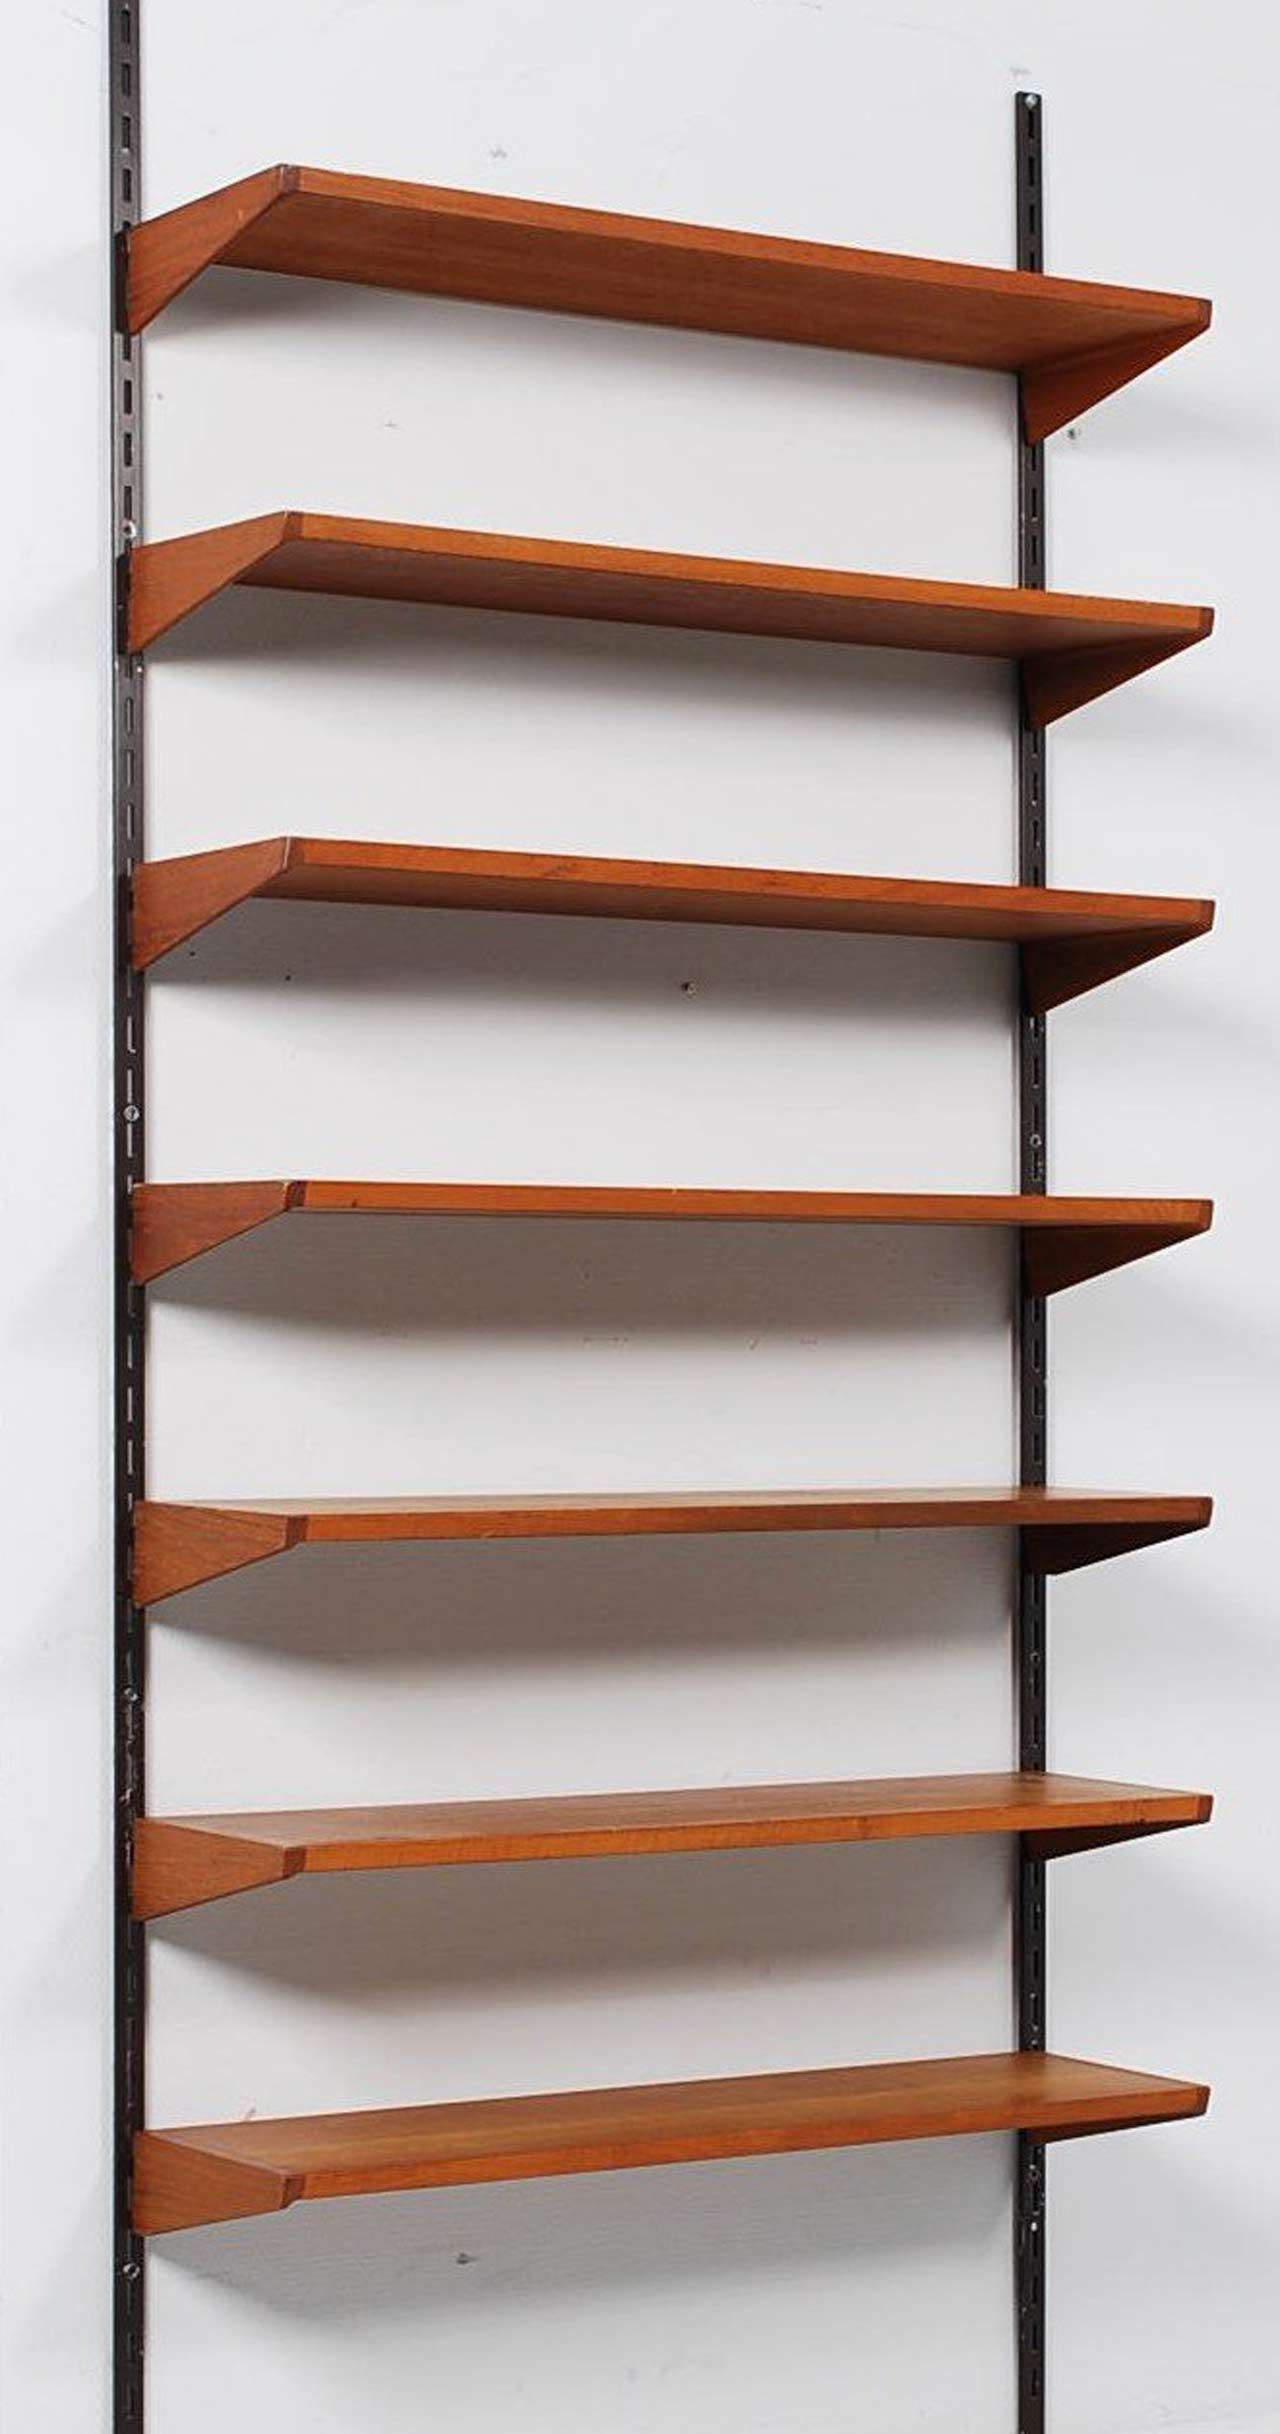 Best Unusual Shelving Units Design Ideas ~ http://www.lookmyhomes.com/unusual-shelving-units-to-keep-your-books/